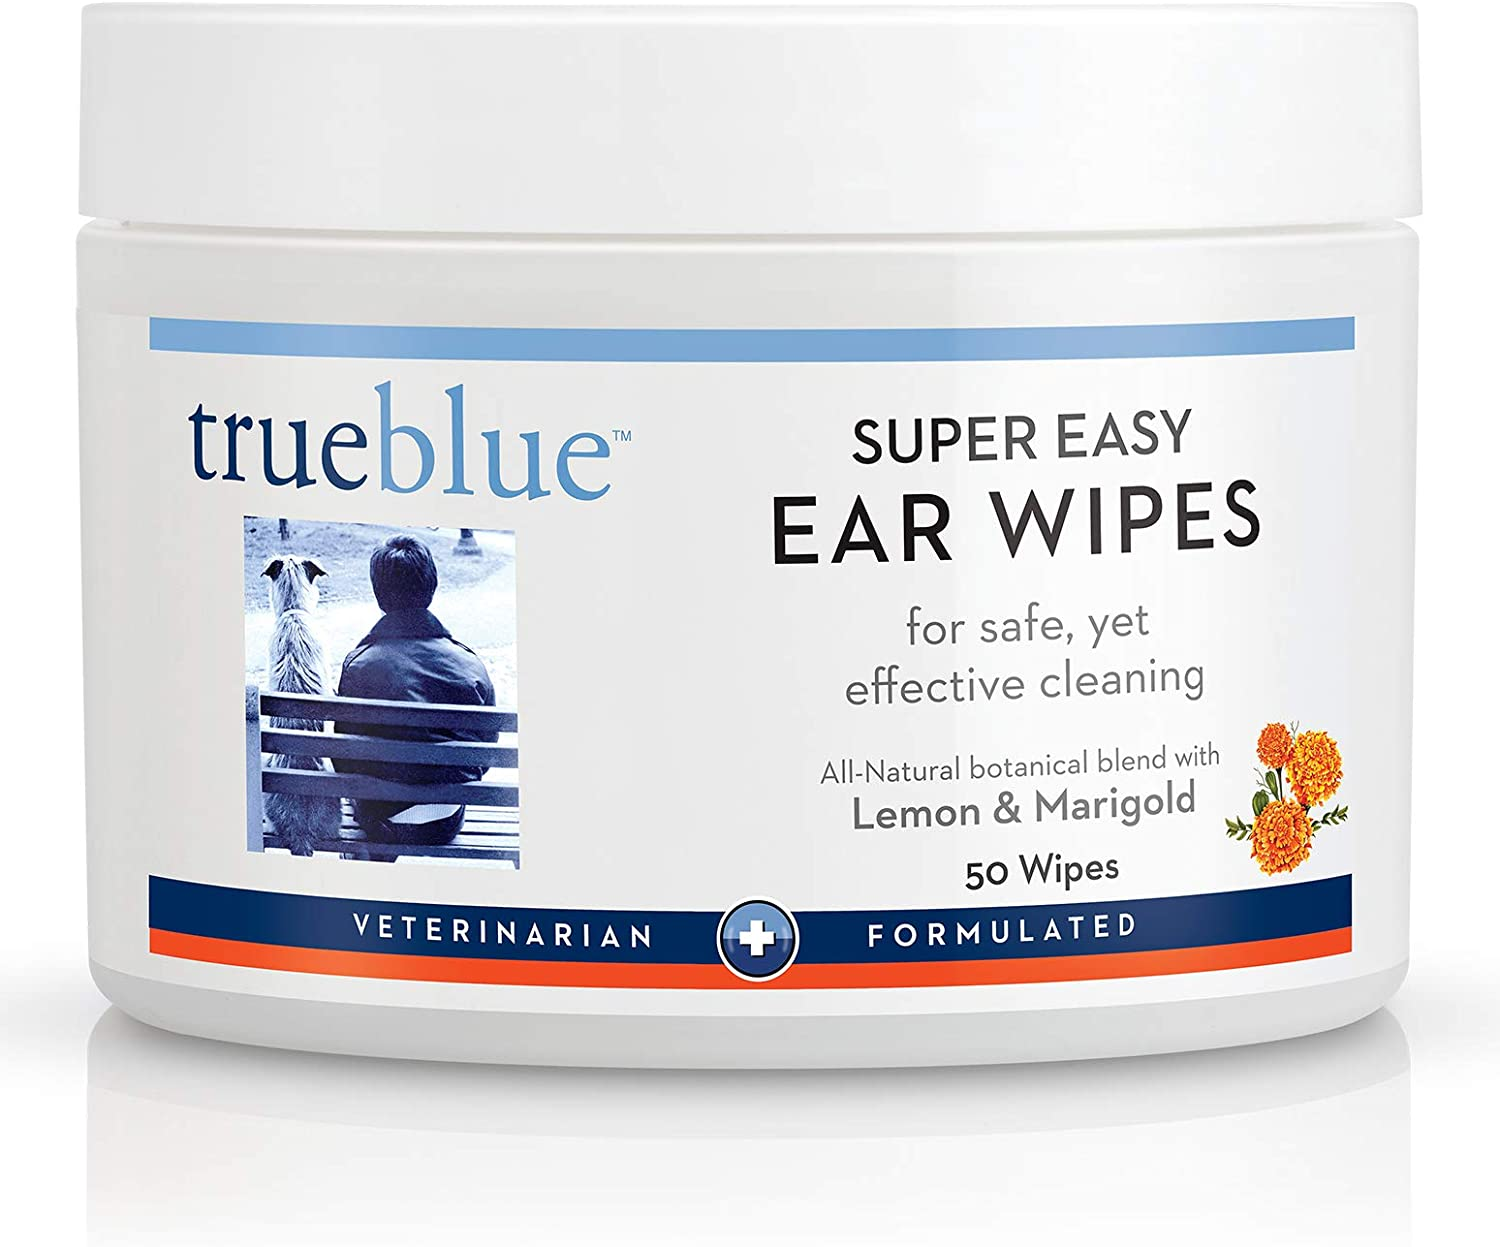 TrueBlue Lemon & Marigold Super Easy Dog Ear Wipes – Pre-Moistened Puppy Pads for Ear Cleaning – Cleansing Ear Wipe for Dogs, Puppies – Non-Toxic, All-Natural – 50 Count